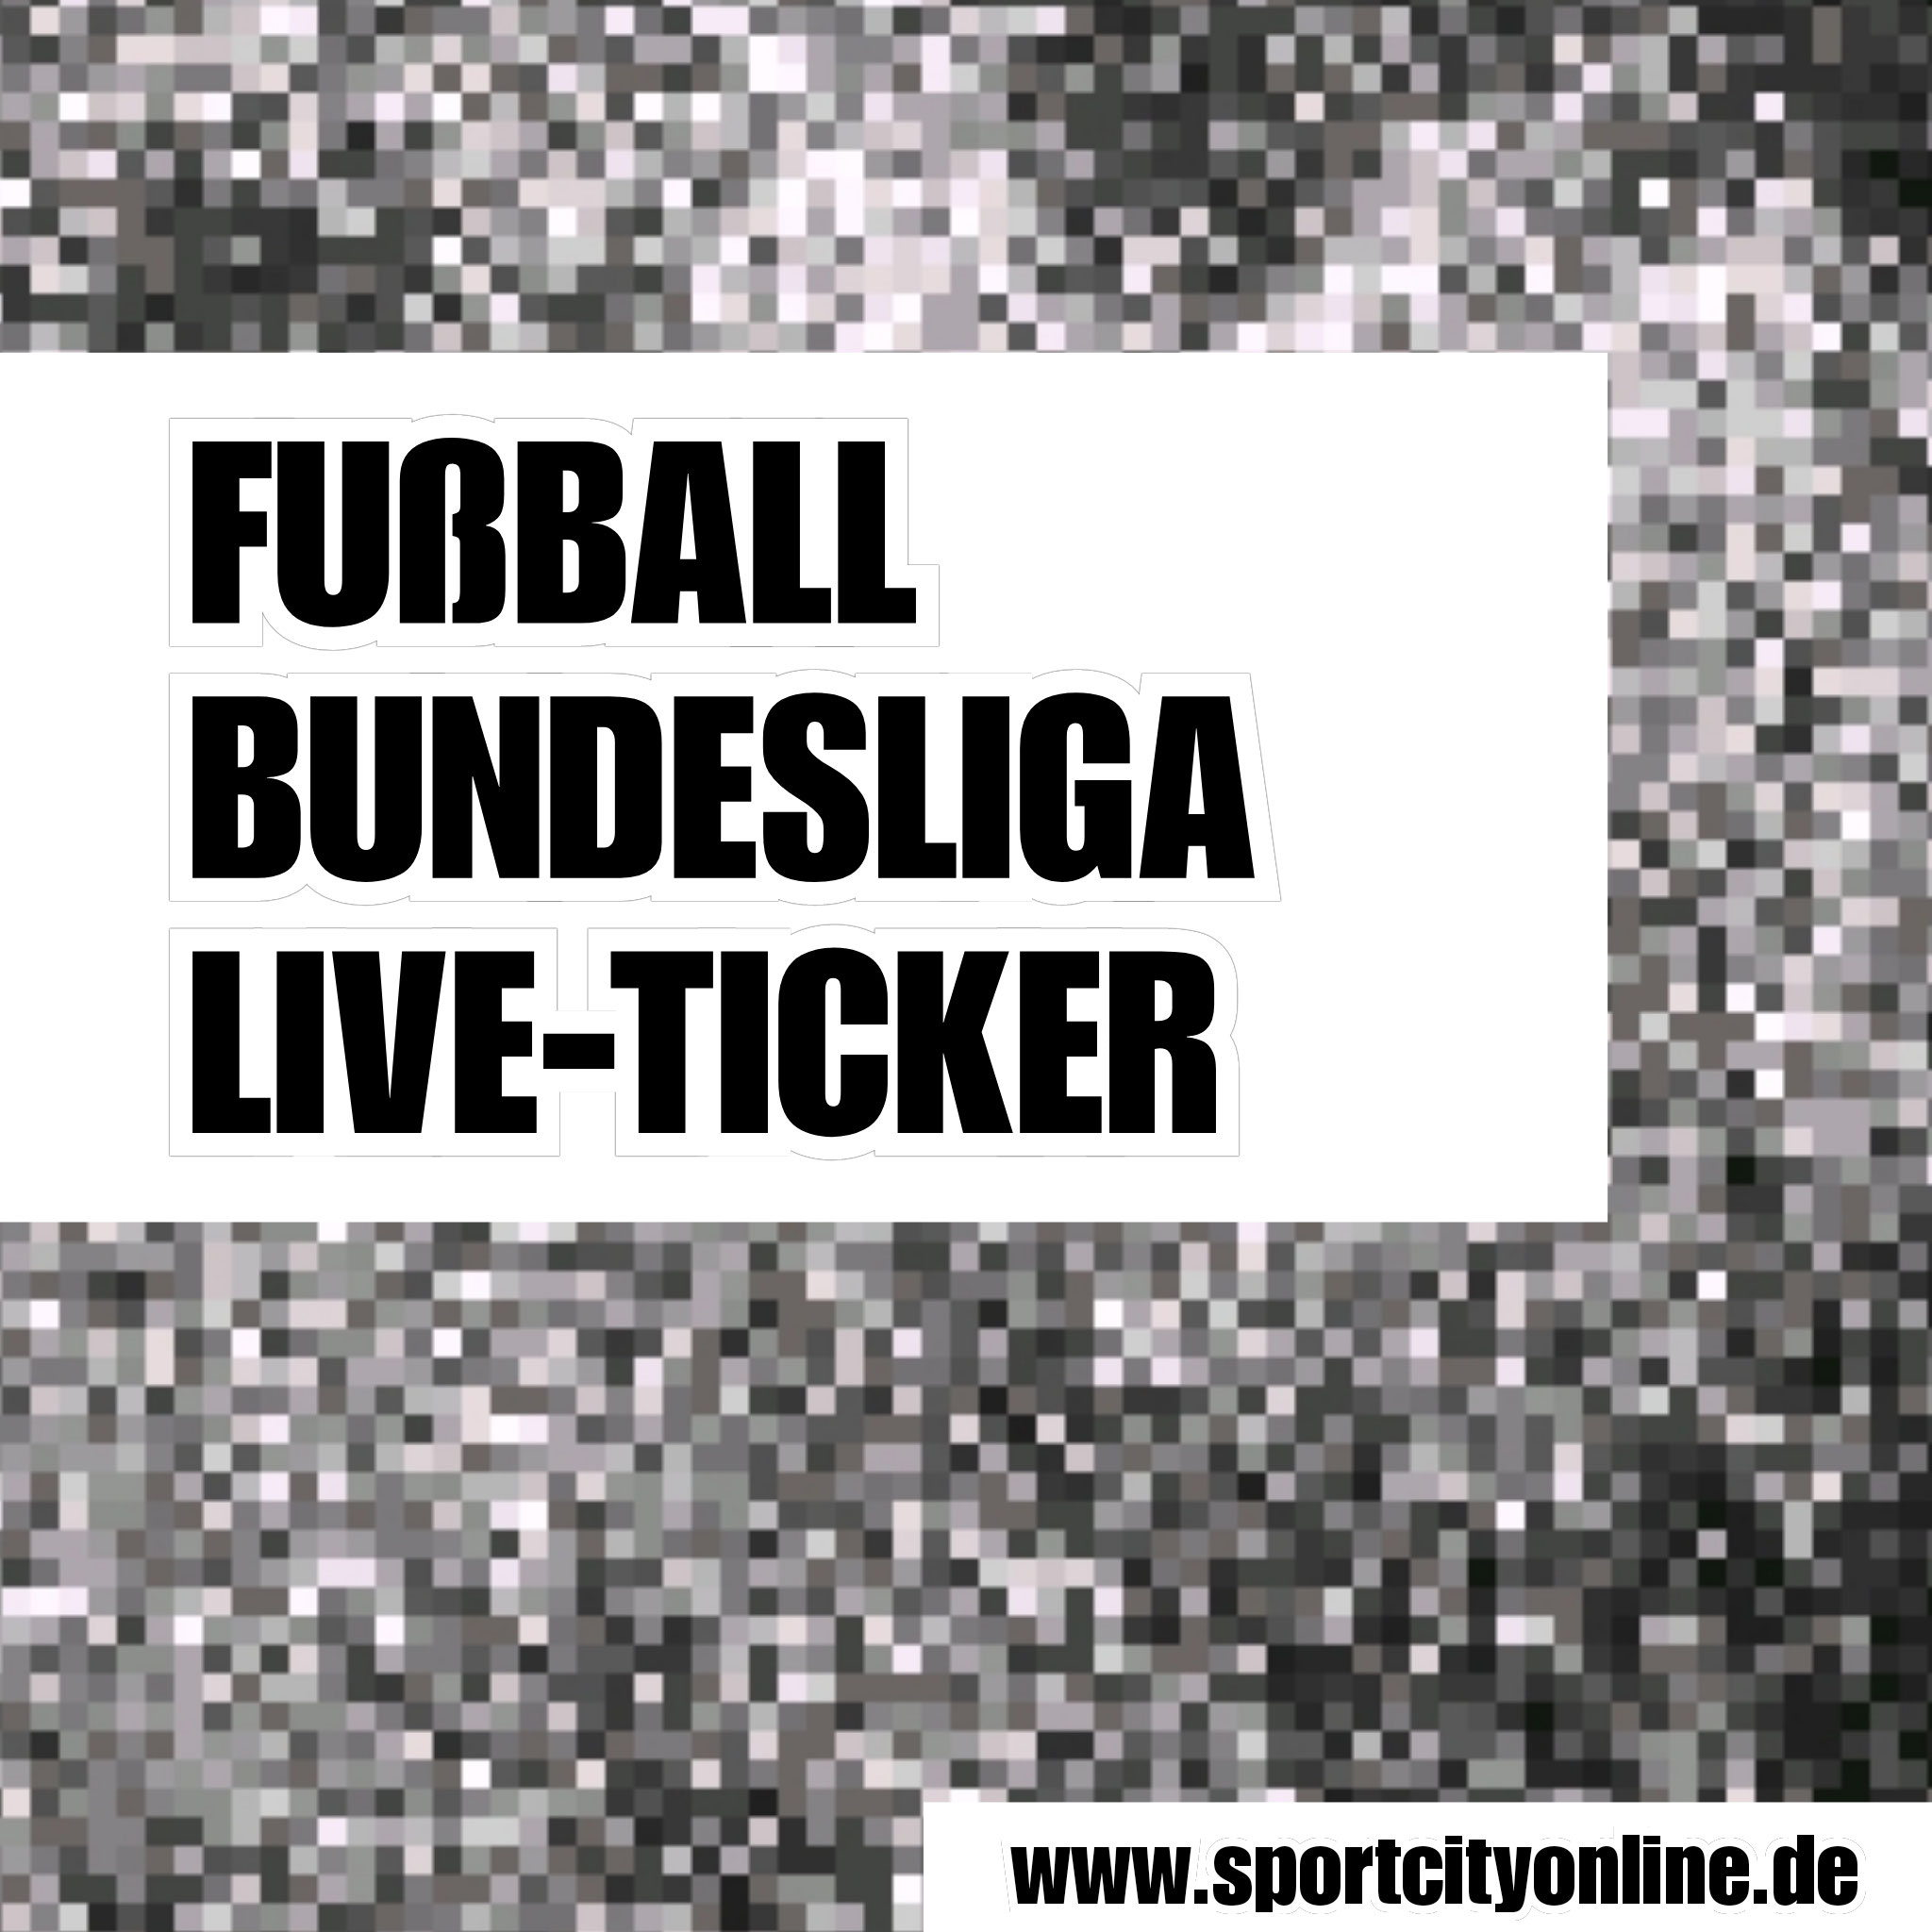 Bundeliga Live Ticker